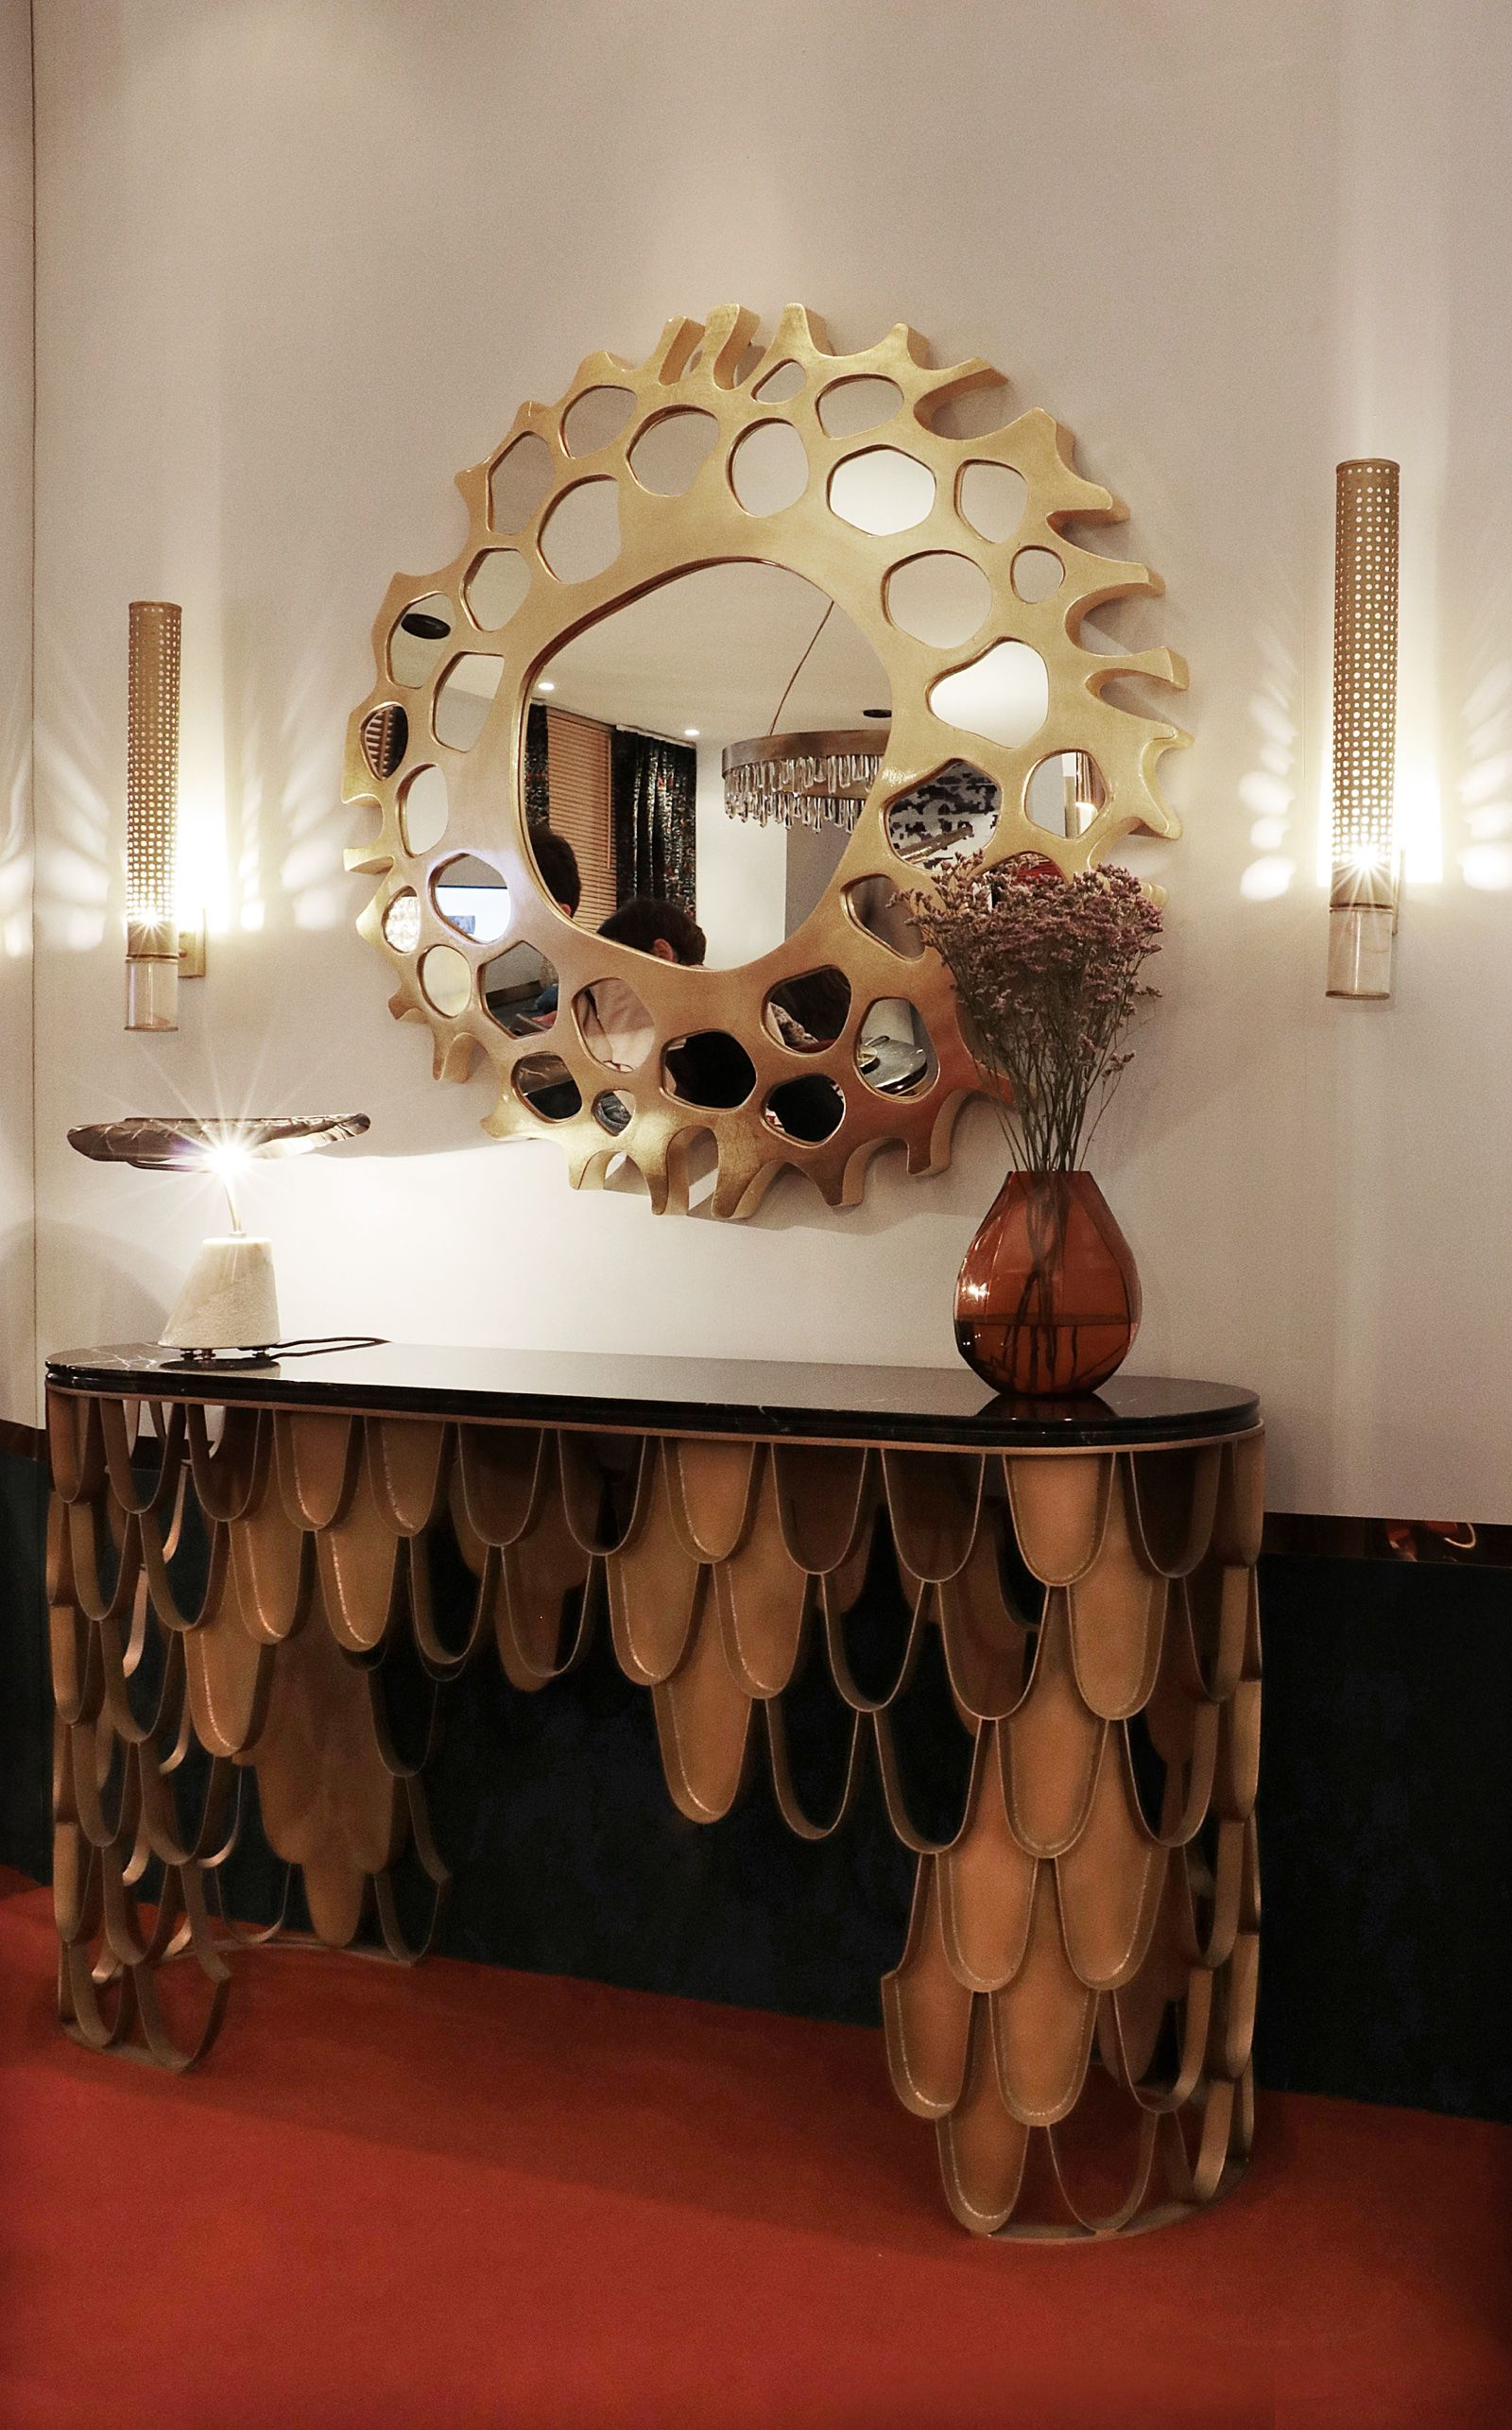 ISALONI 2017 TRENDS AND NEWS Find the best interior